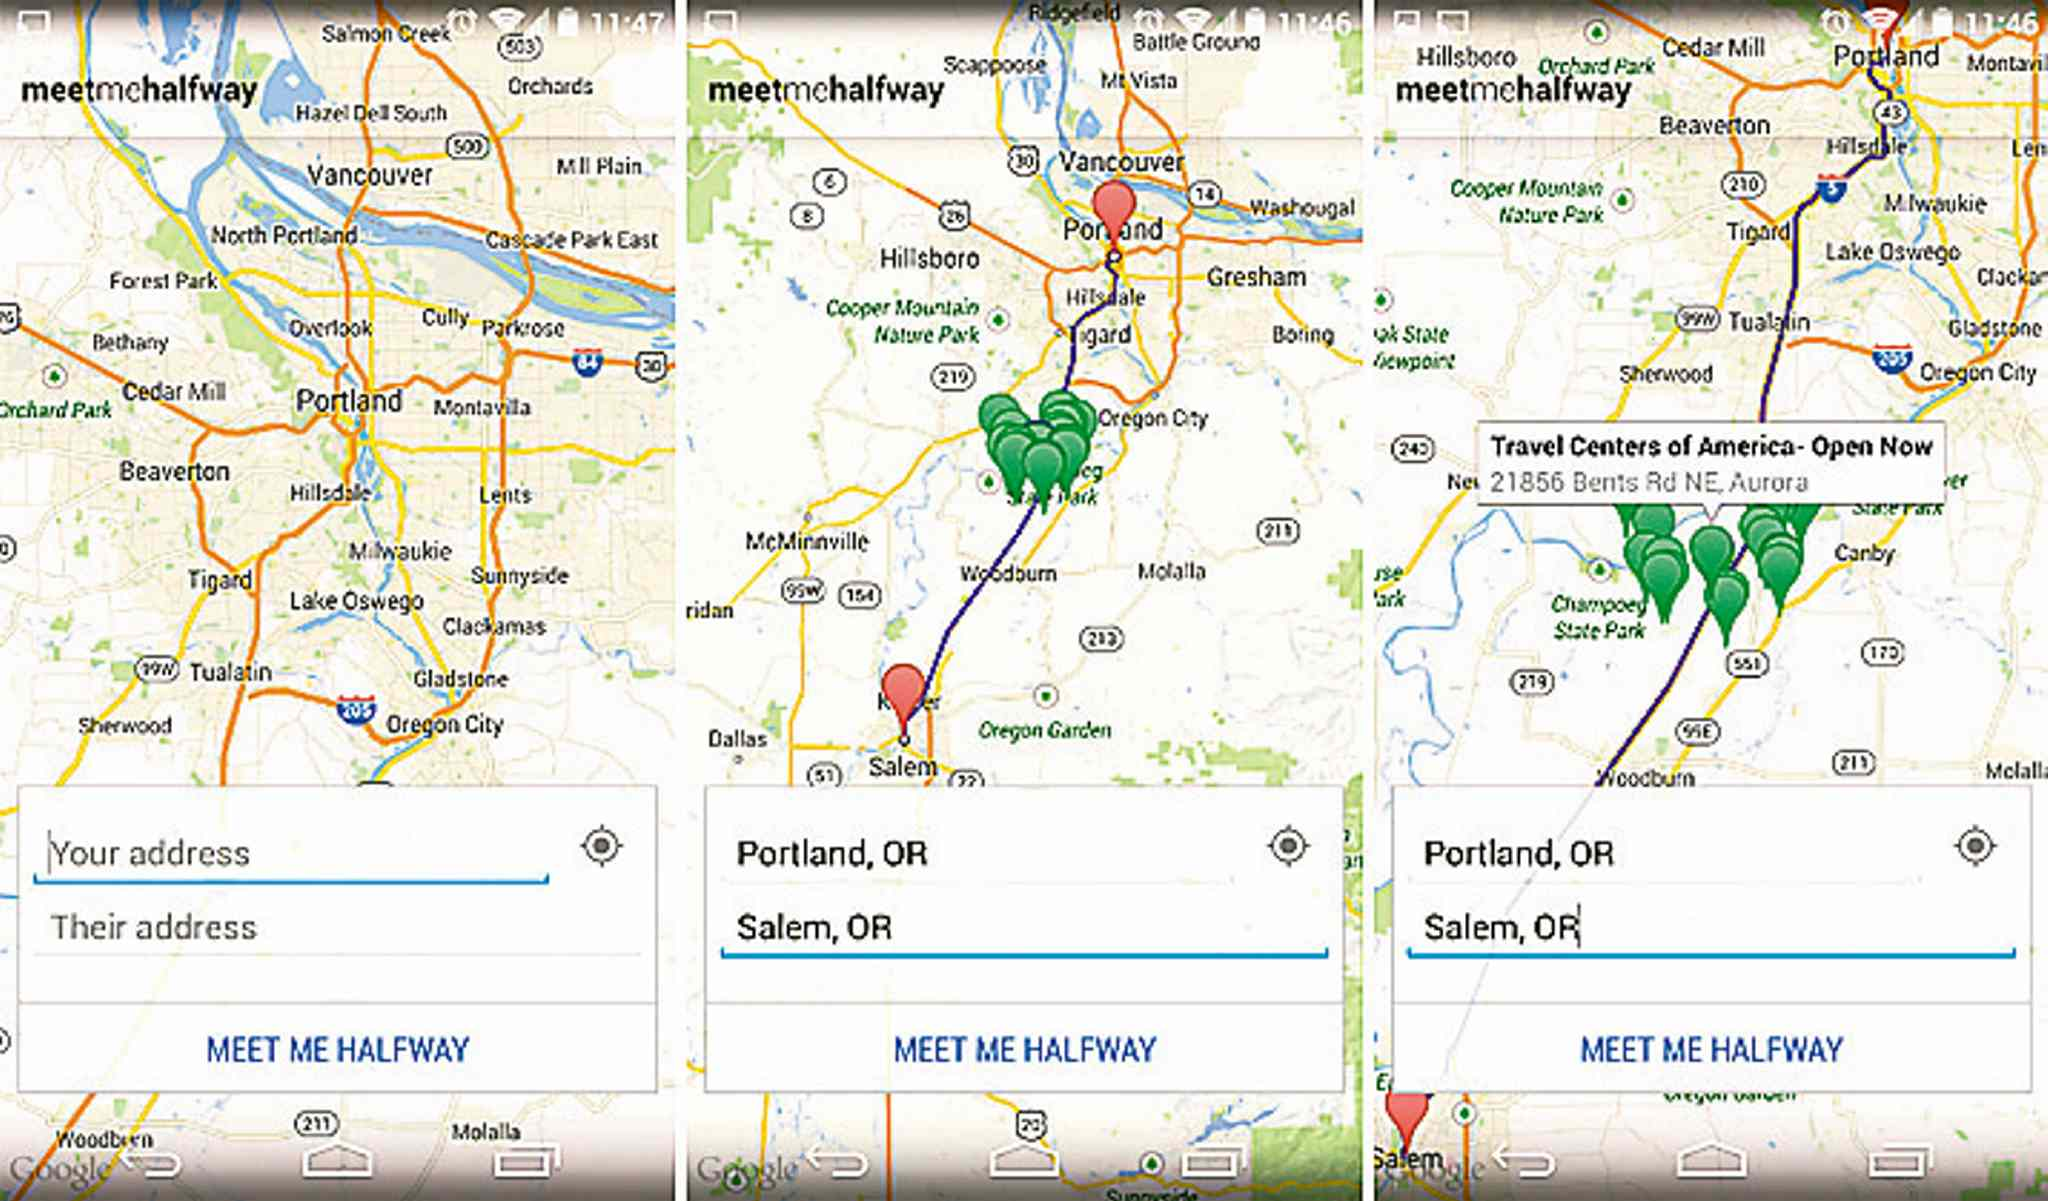 The Meet Me Halfway app helps find a meeting spot between two locations.